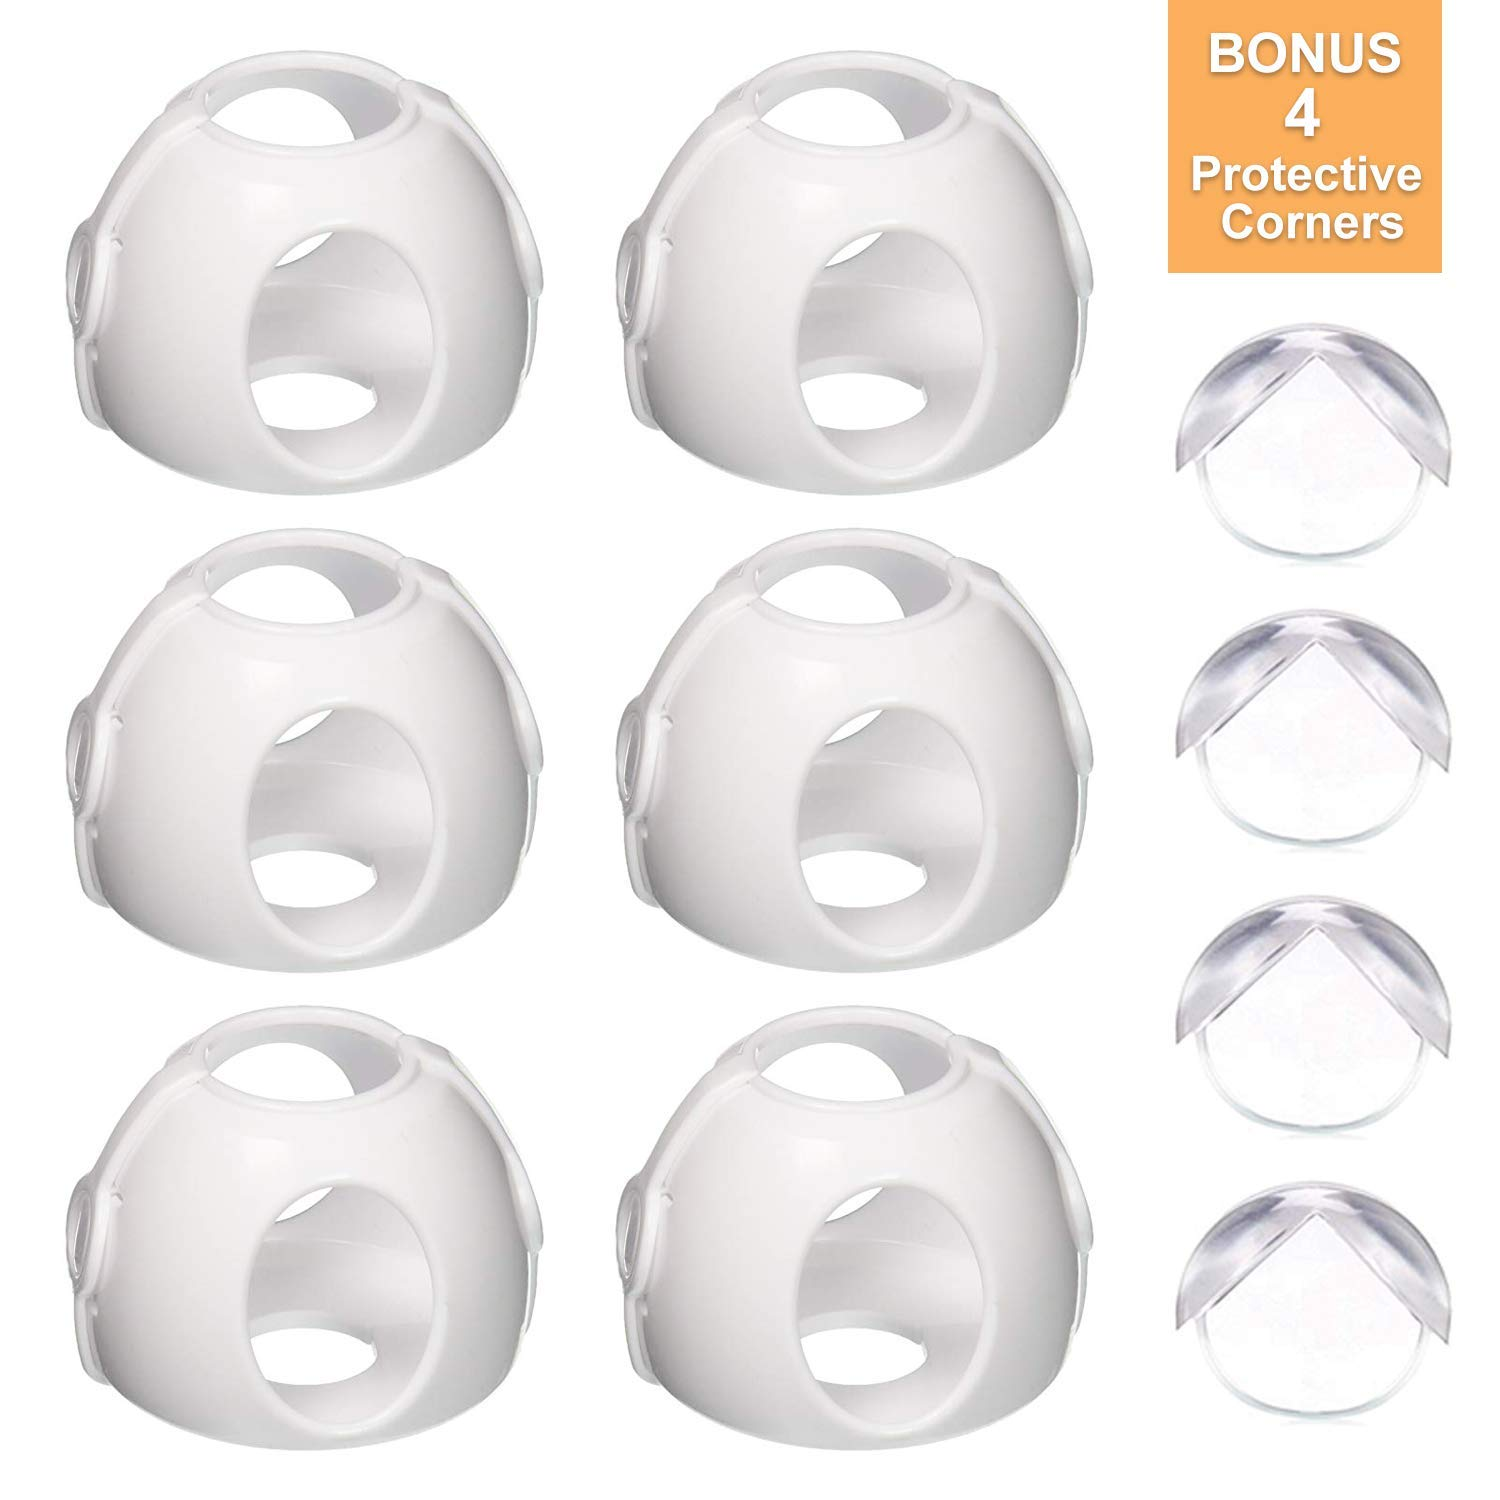 Roklur Premium Extra Strength Child Proof Door Knob Safety Covers - 6 Pack- Heavy Duty Protector - Easy to Install White Color Handles - with Bonus Baby/Toddler Proofing Corner Edge Guards